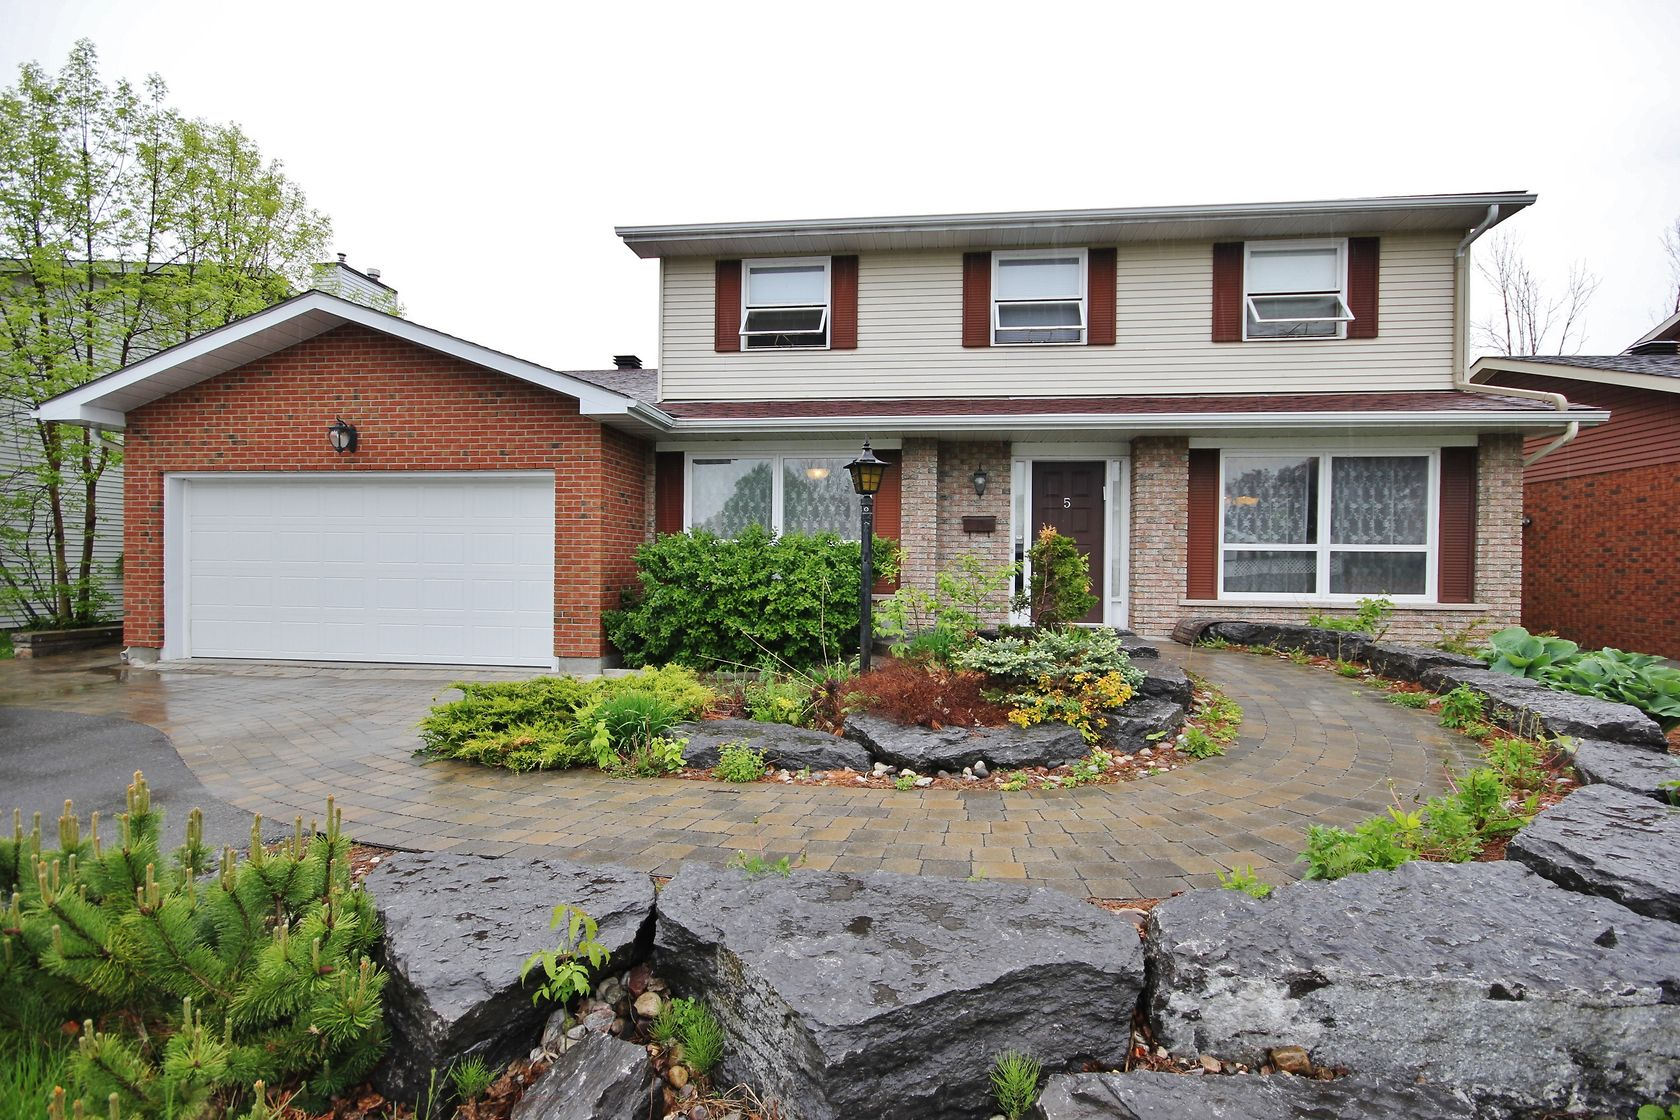 5 Roselawn Crt - Stunning and Spacious 7 Bedroom, 5 Bath Detached Home in Craig Henry!